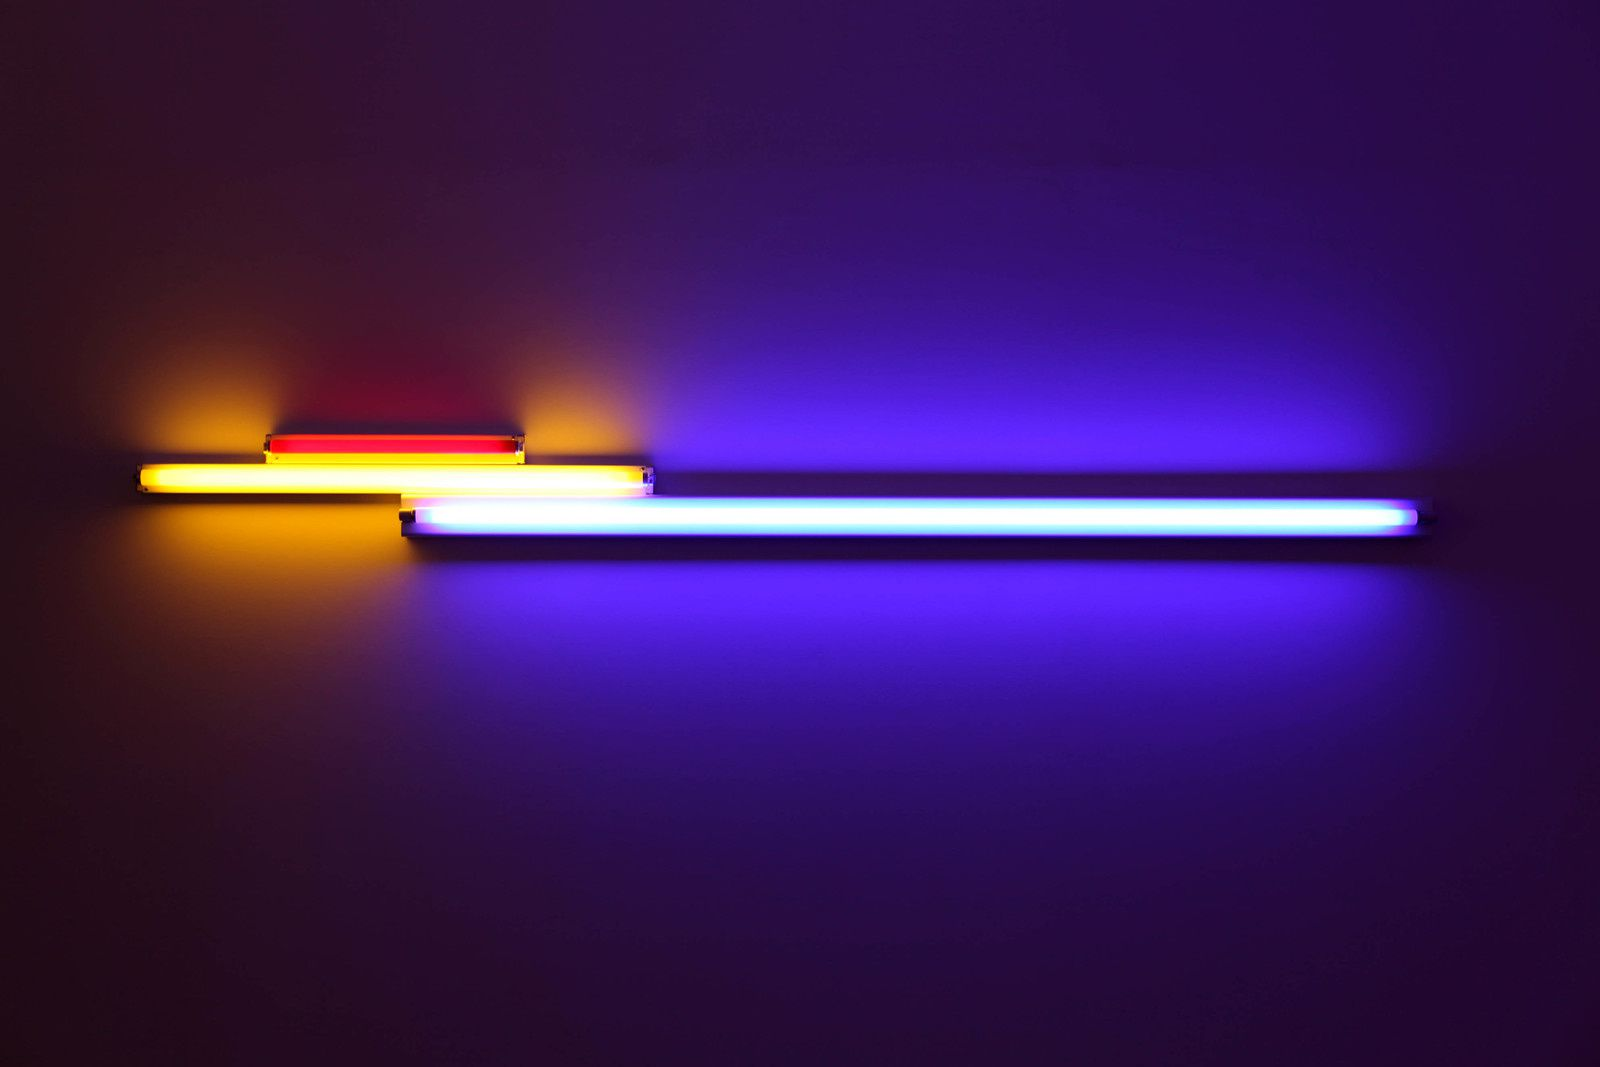 """Untitled (in memory of ""Sandy"" Calder)"", 1977 de Dan FLAVIN - Courtesy Galerie David Zwirner Paris © Photo Éric Simon"